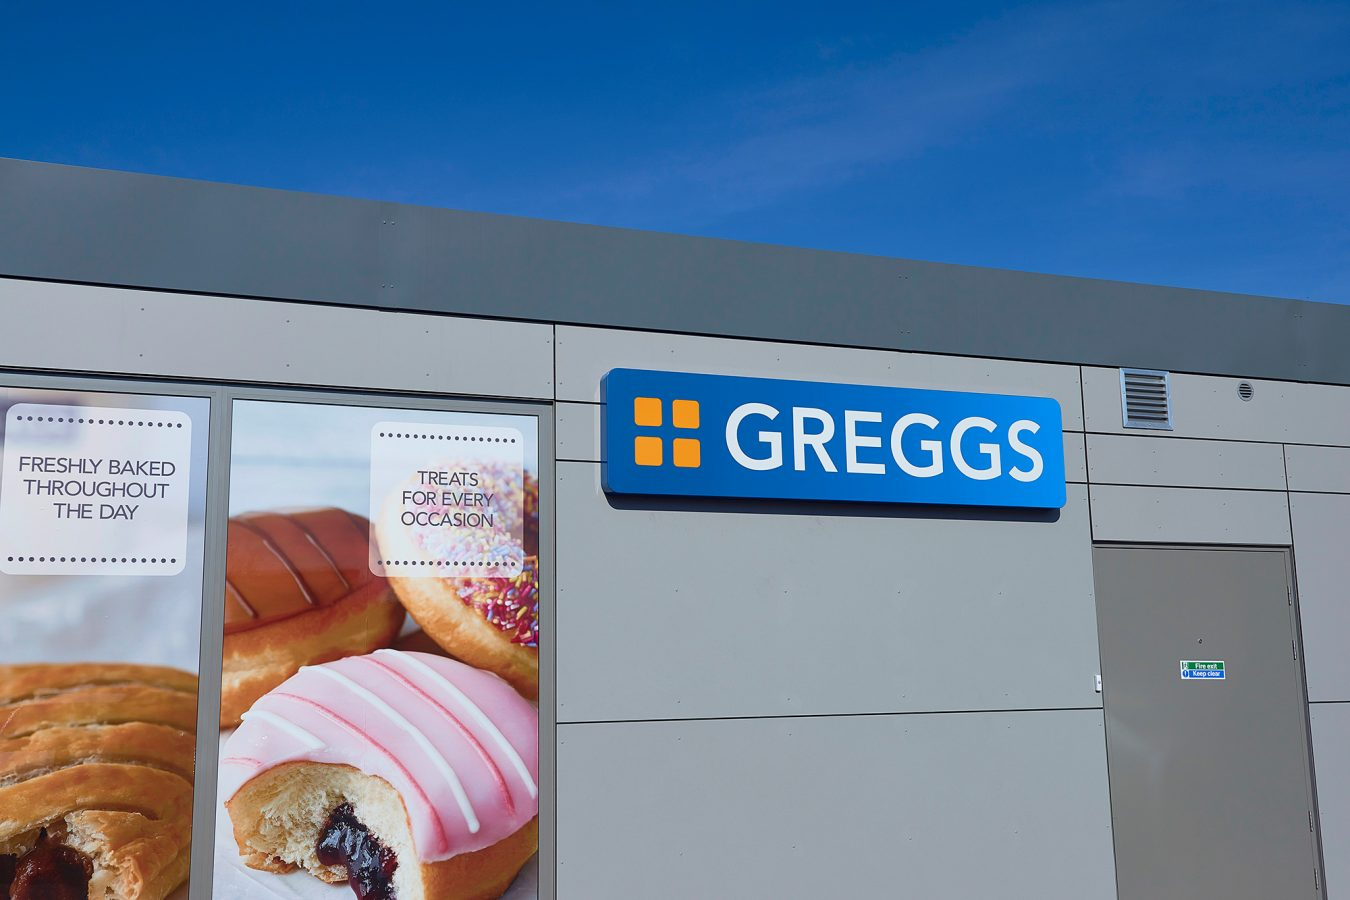 Greggs cladding refurbishment and Greggs sign.